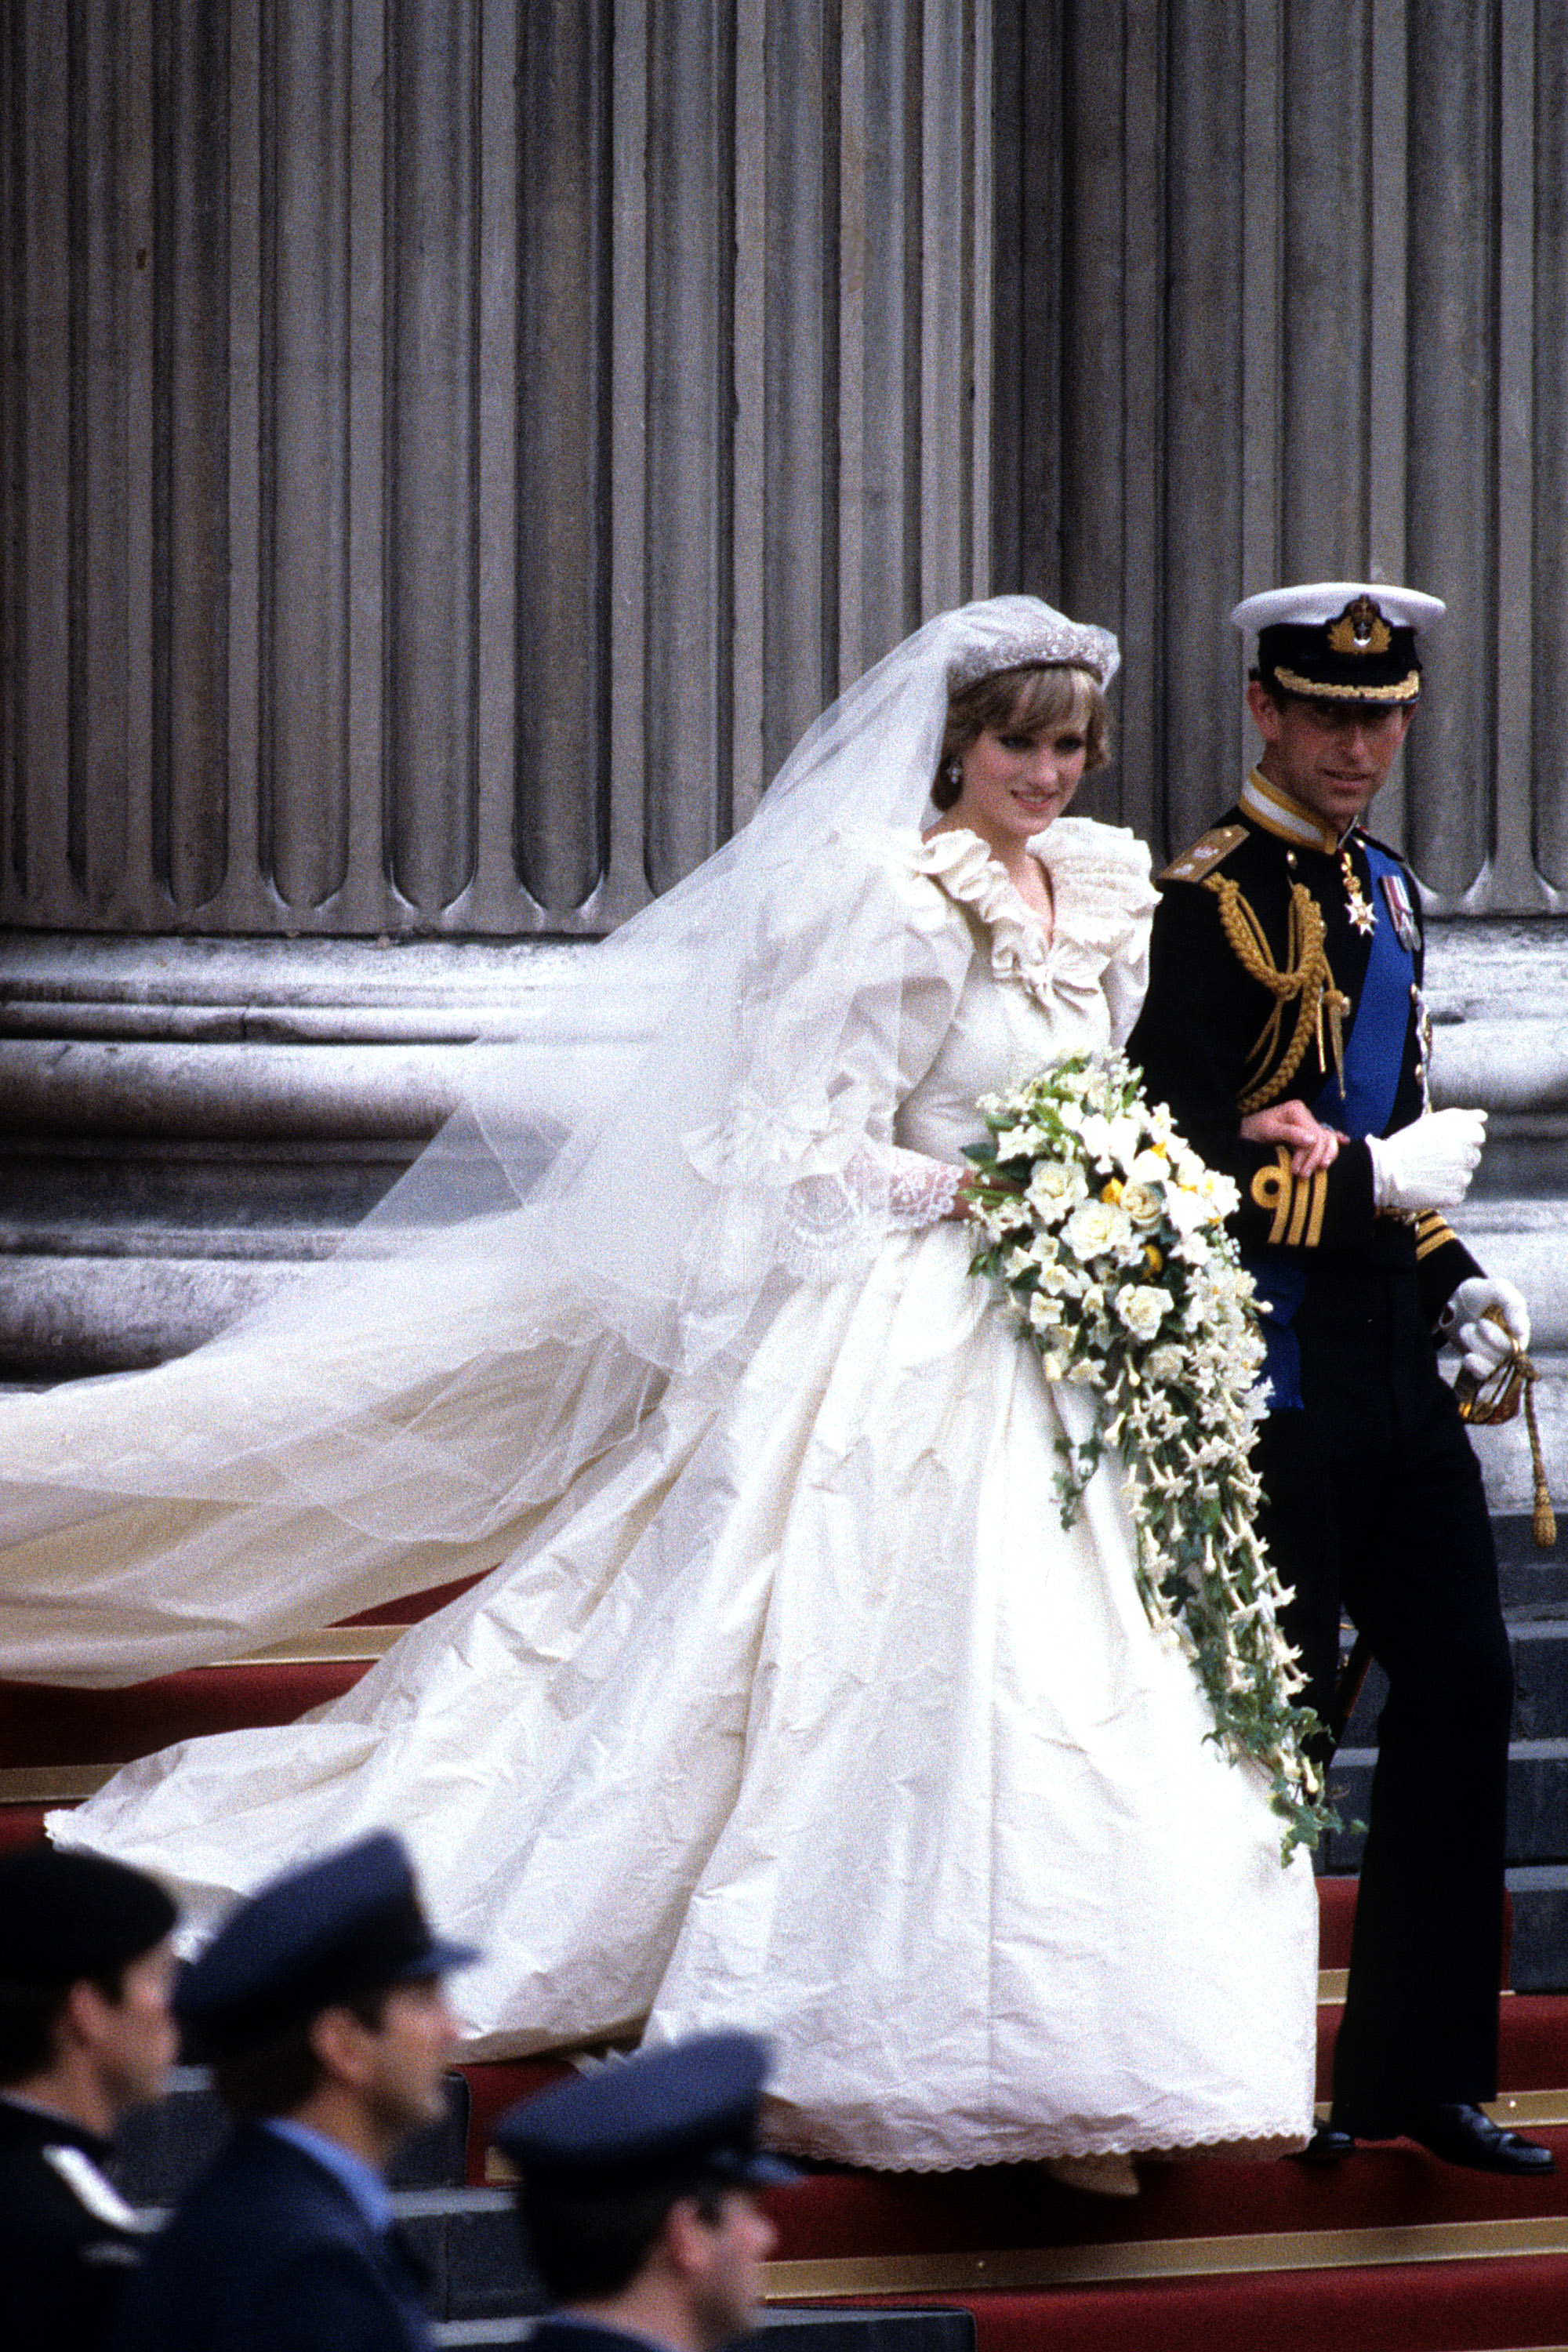 Princess Diana and Prince Charles had a wedding watched 'round the world | follow along on Instagram @ thewildflowers.events